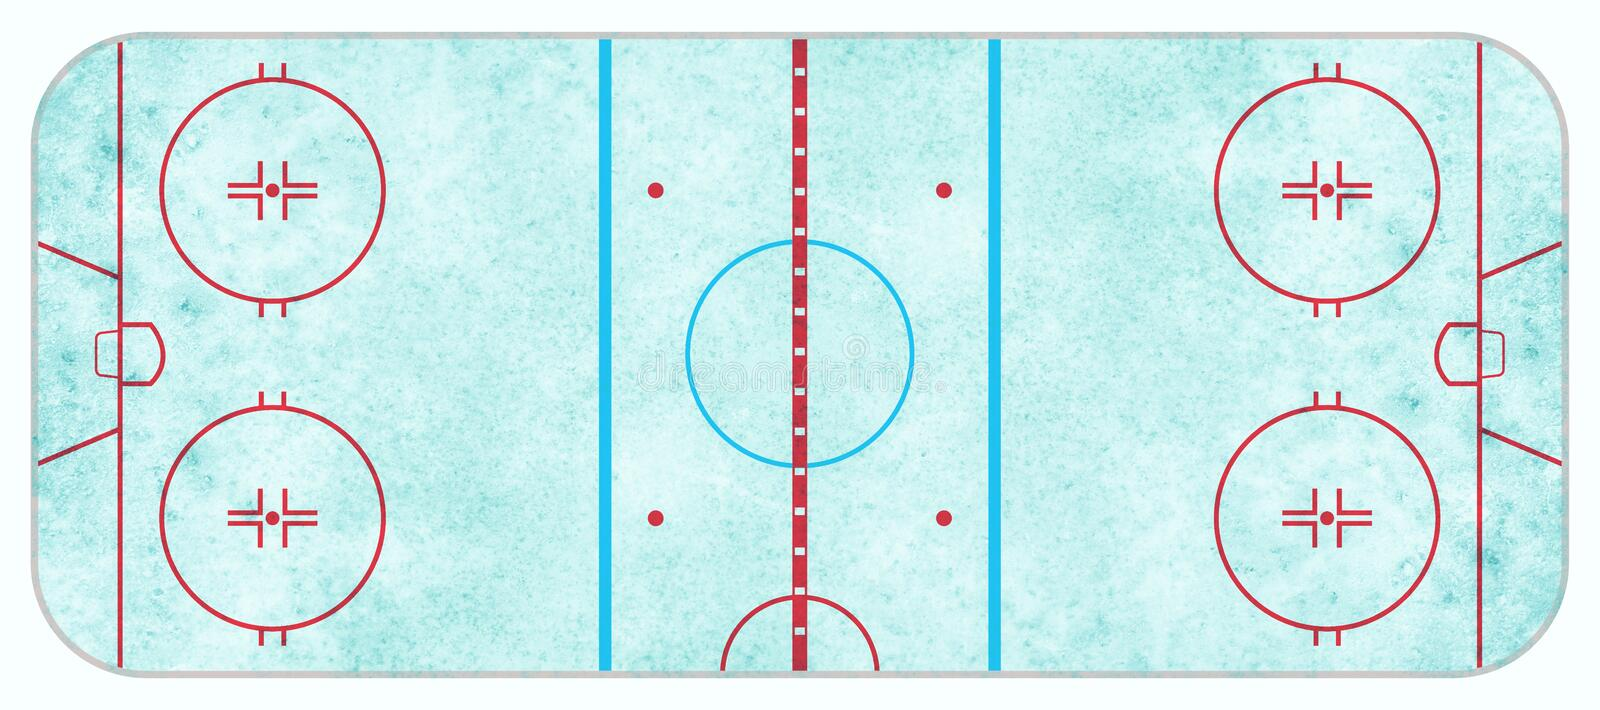 Aerial View of Textured Ice Hockey Rink royalty free stock image